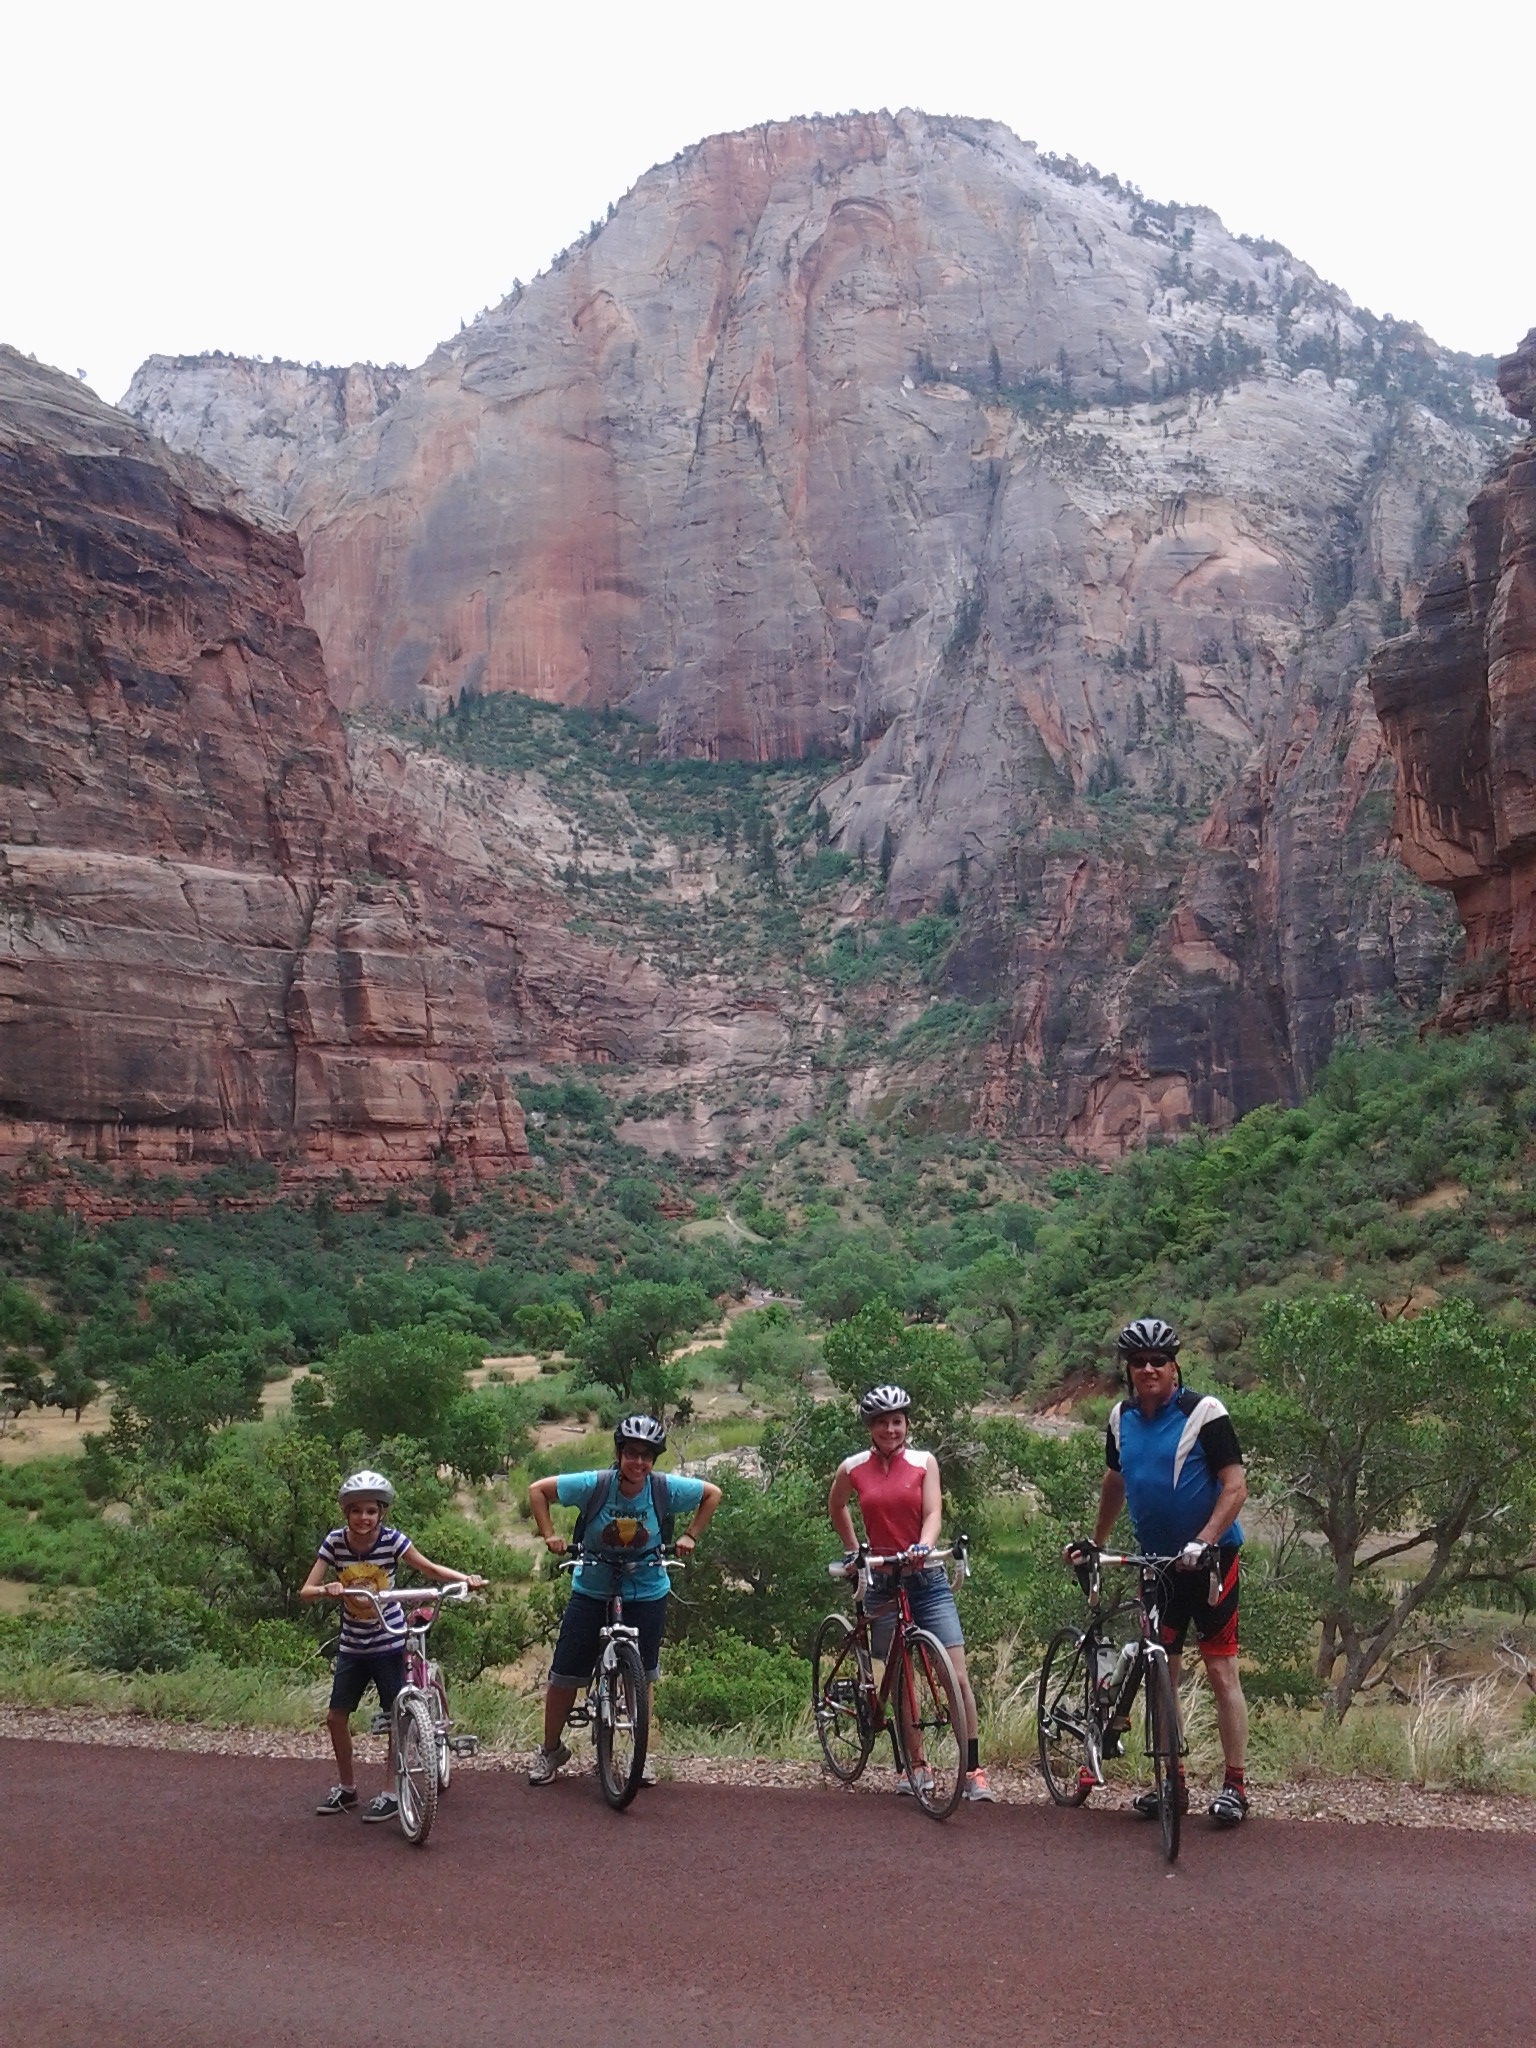 (L-R), Leah Wadsworth, Melissa Wadsworth, Caitlyn Hunsaker, and Scott Hunsaker, pausing for a photo opportunity during a bicycle ride through Zion Canyon, Utah, July 1, 2016   Photo by Reuben Wadsworth, St. George News